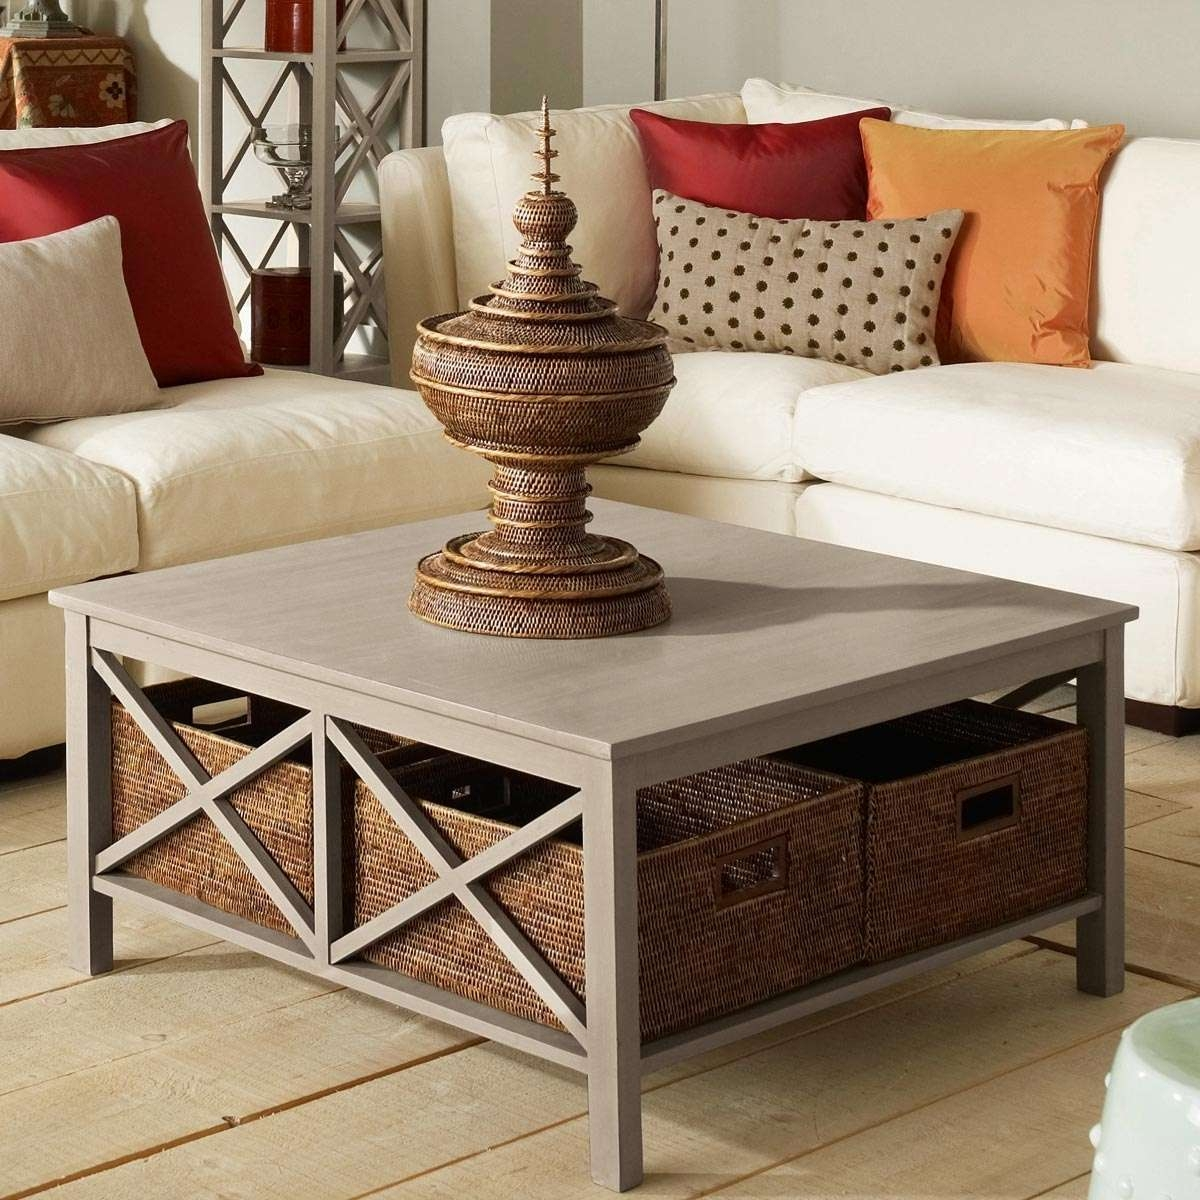 Square Coffee Table With Storage Coffee Tables Inside Coffee Table With Regard To Most Recent Square Storage Coffee Table (View 17 of 20)